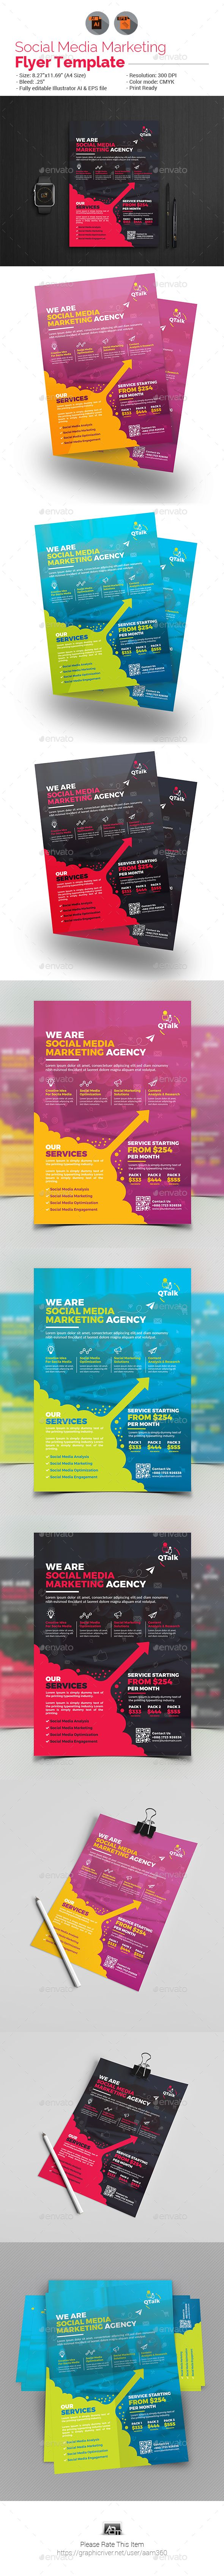 marketing flyers  social media marketing flyer v2 corporate flyers here